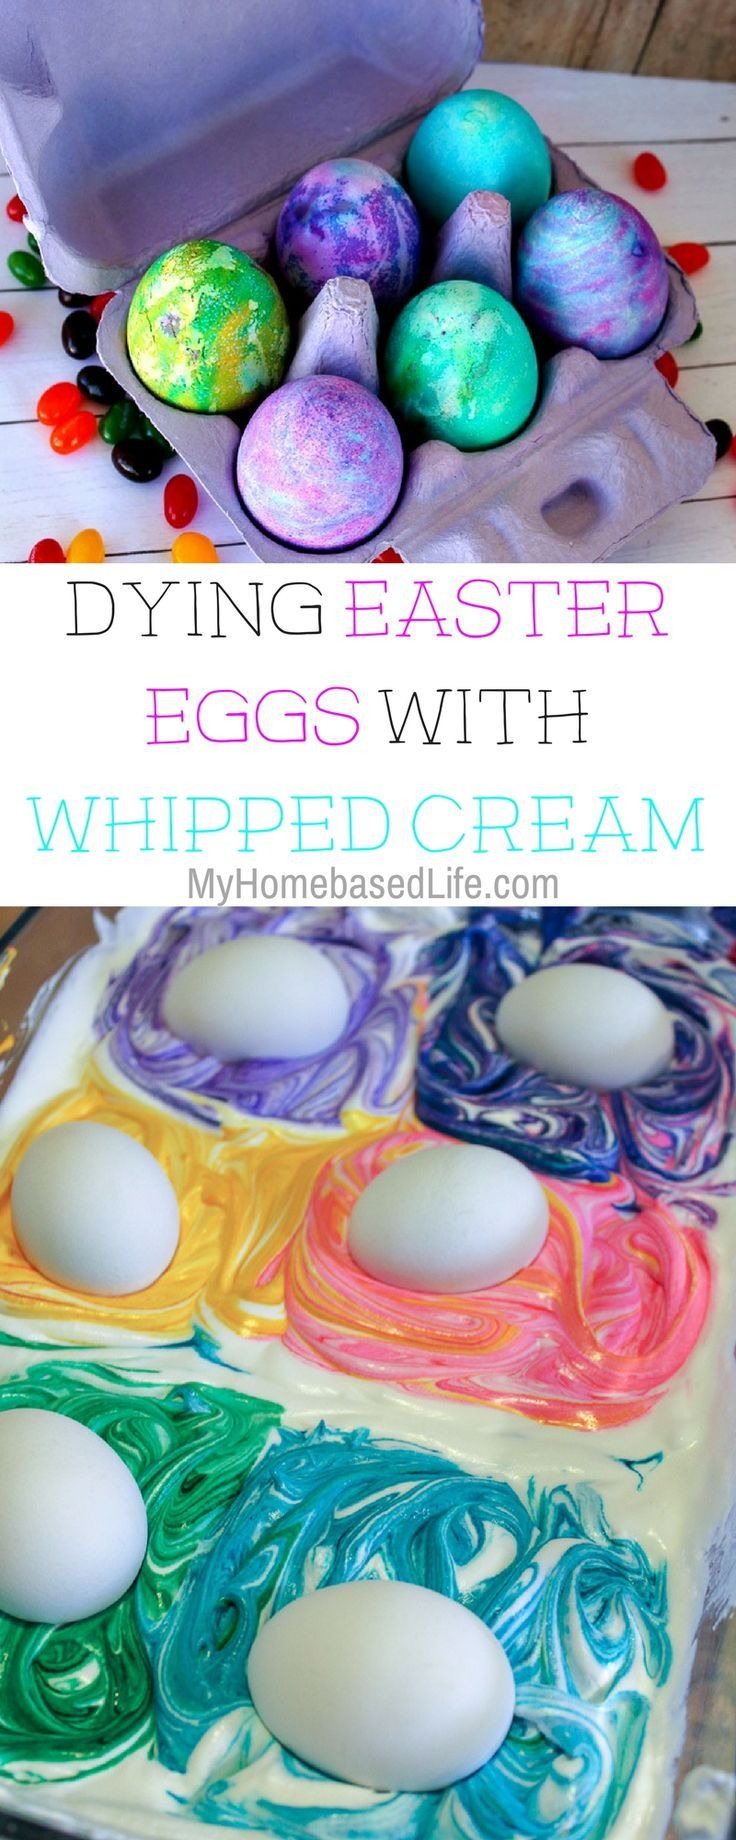 Dying Easter Eggs with Whipped Cream | My Home Based Life